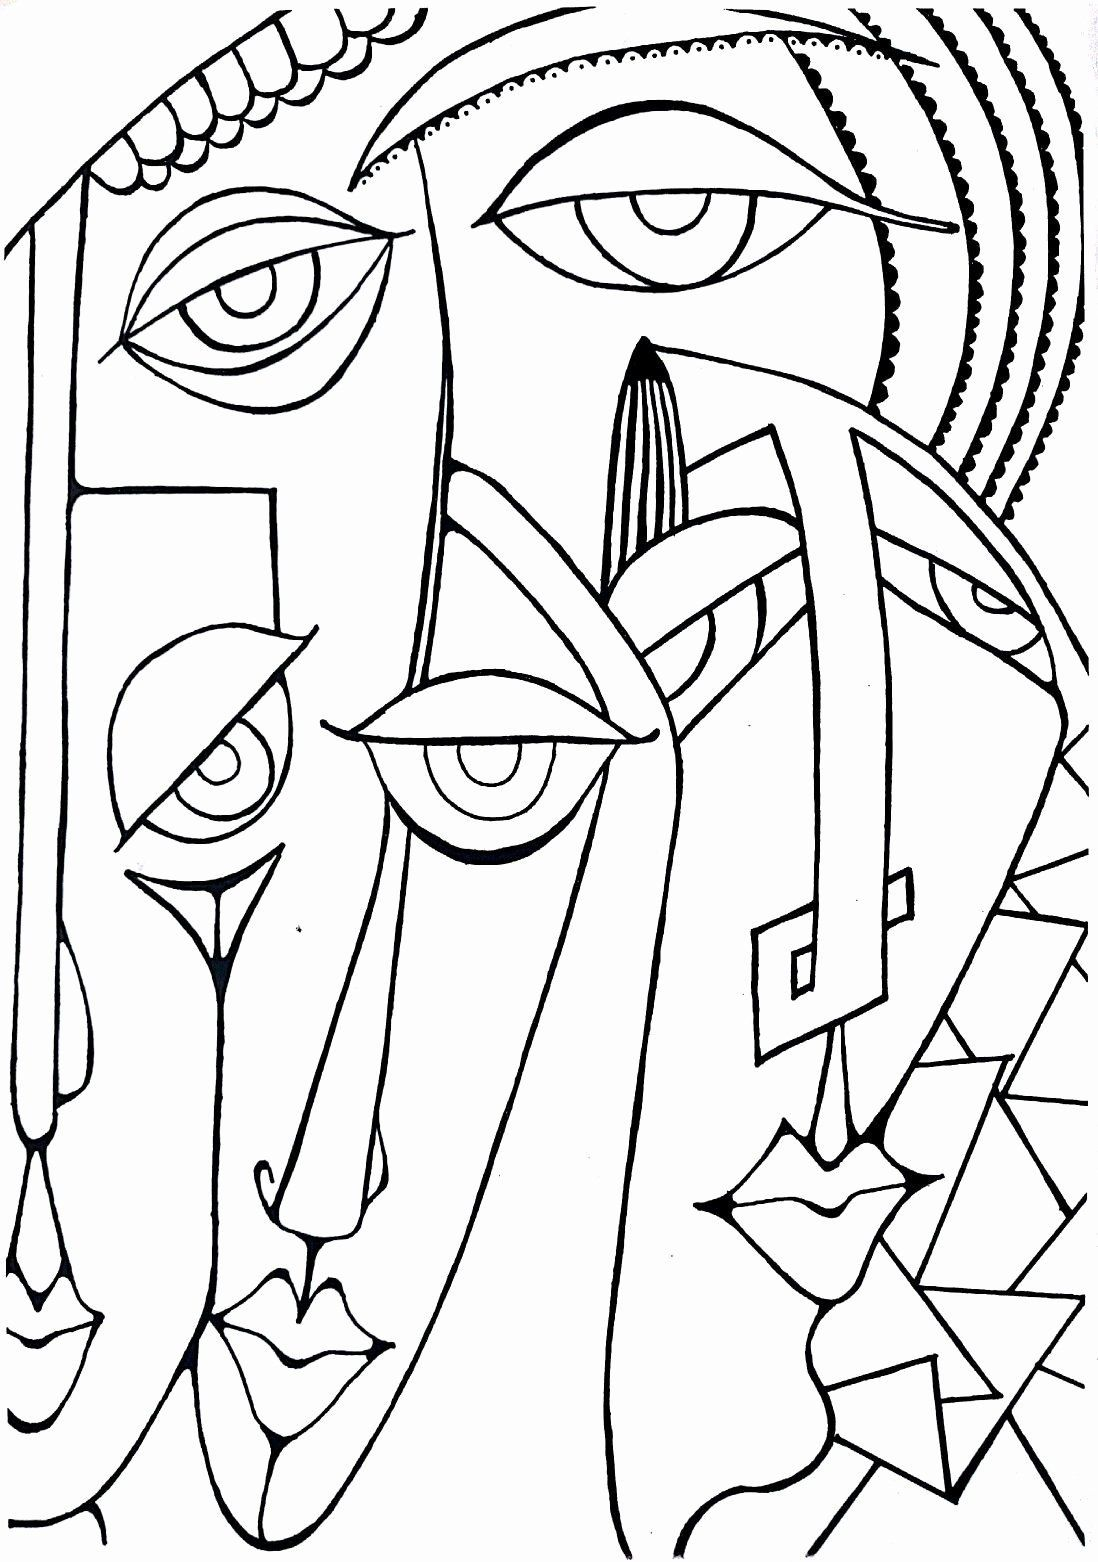 Picasso Coloring Pages Printable Unique Pin By Ali Ozkan Sevsin On Boyama Sayfalari In 2020 Abstract Art Painting Picasso Art Cubism Art